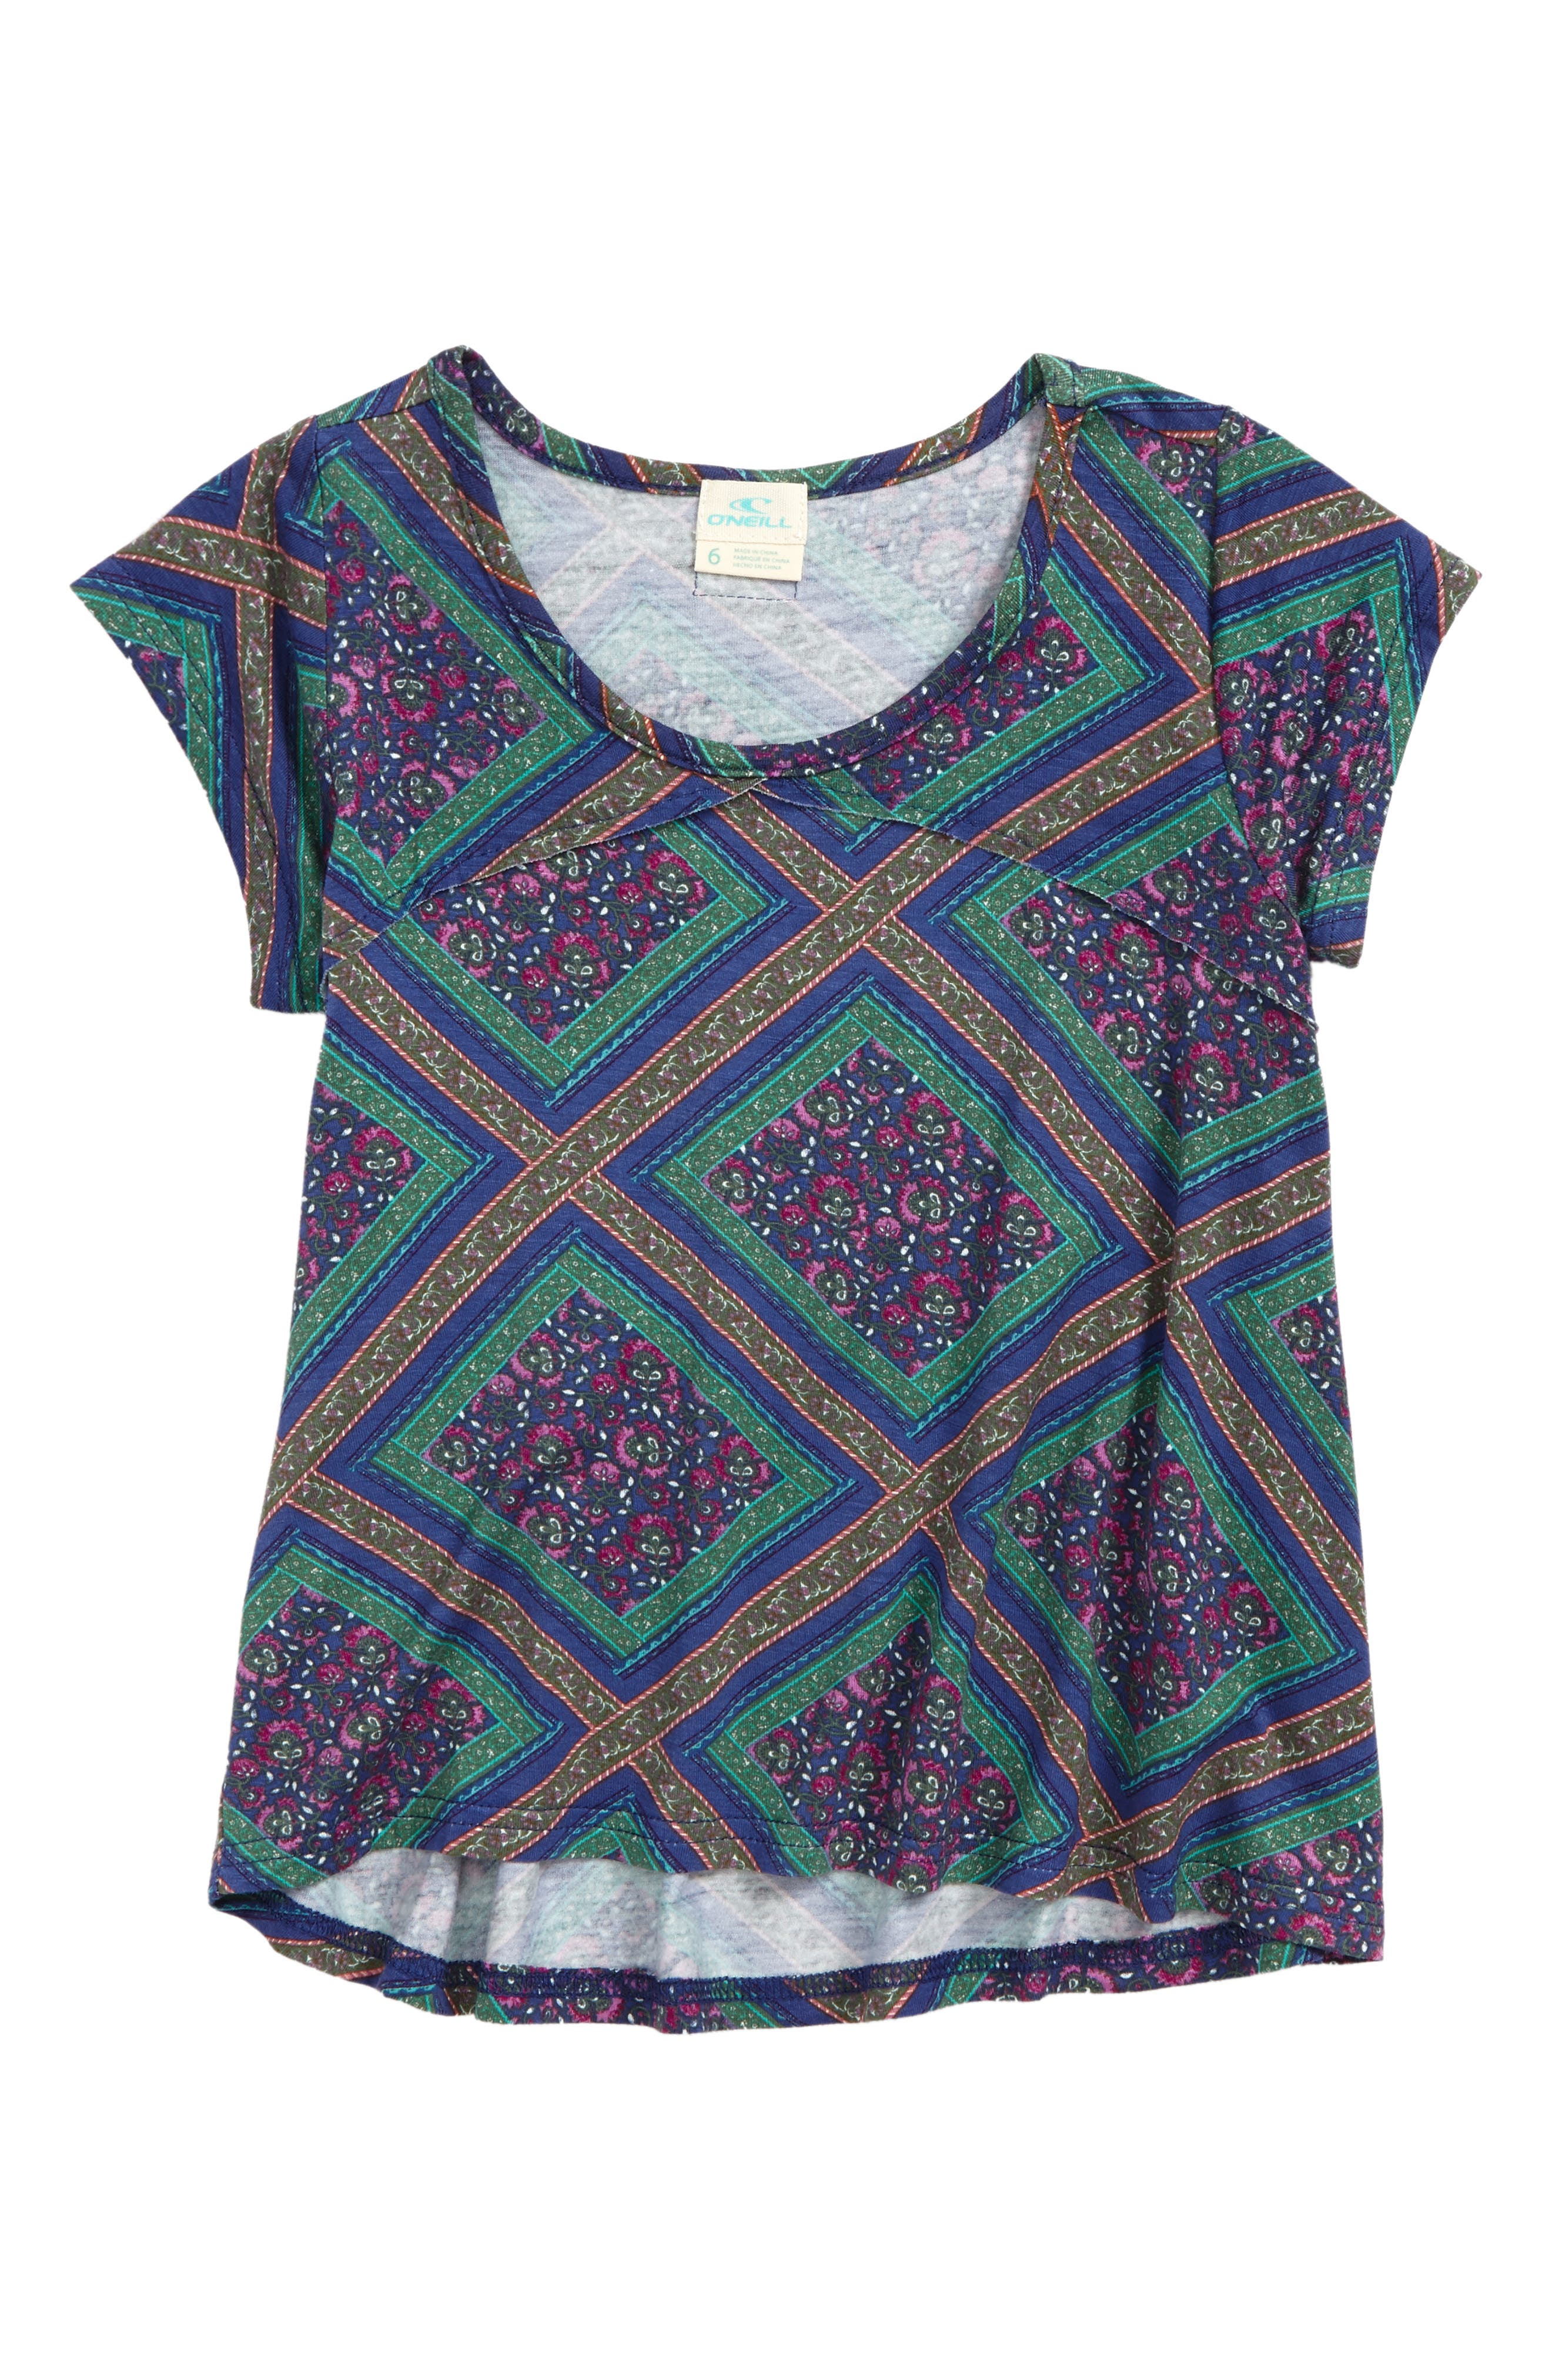 Alternate Image 1 Selected - O'Neill Emery Knit Top (Toddler Girls & Little Girls)